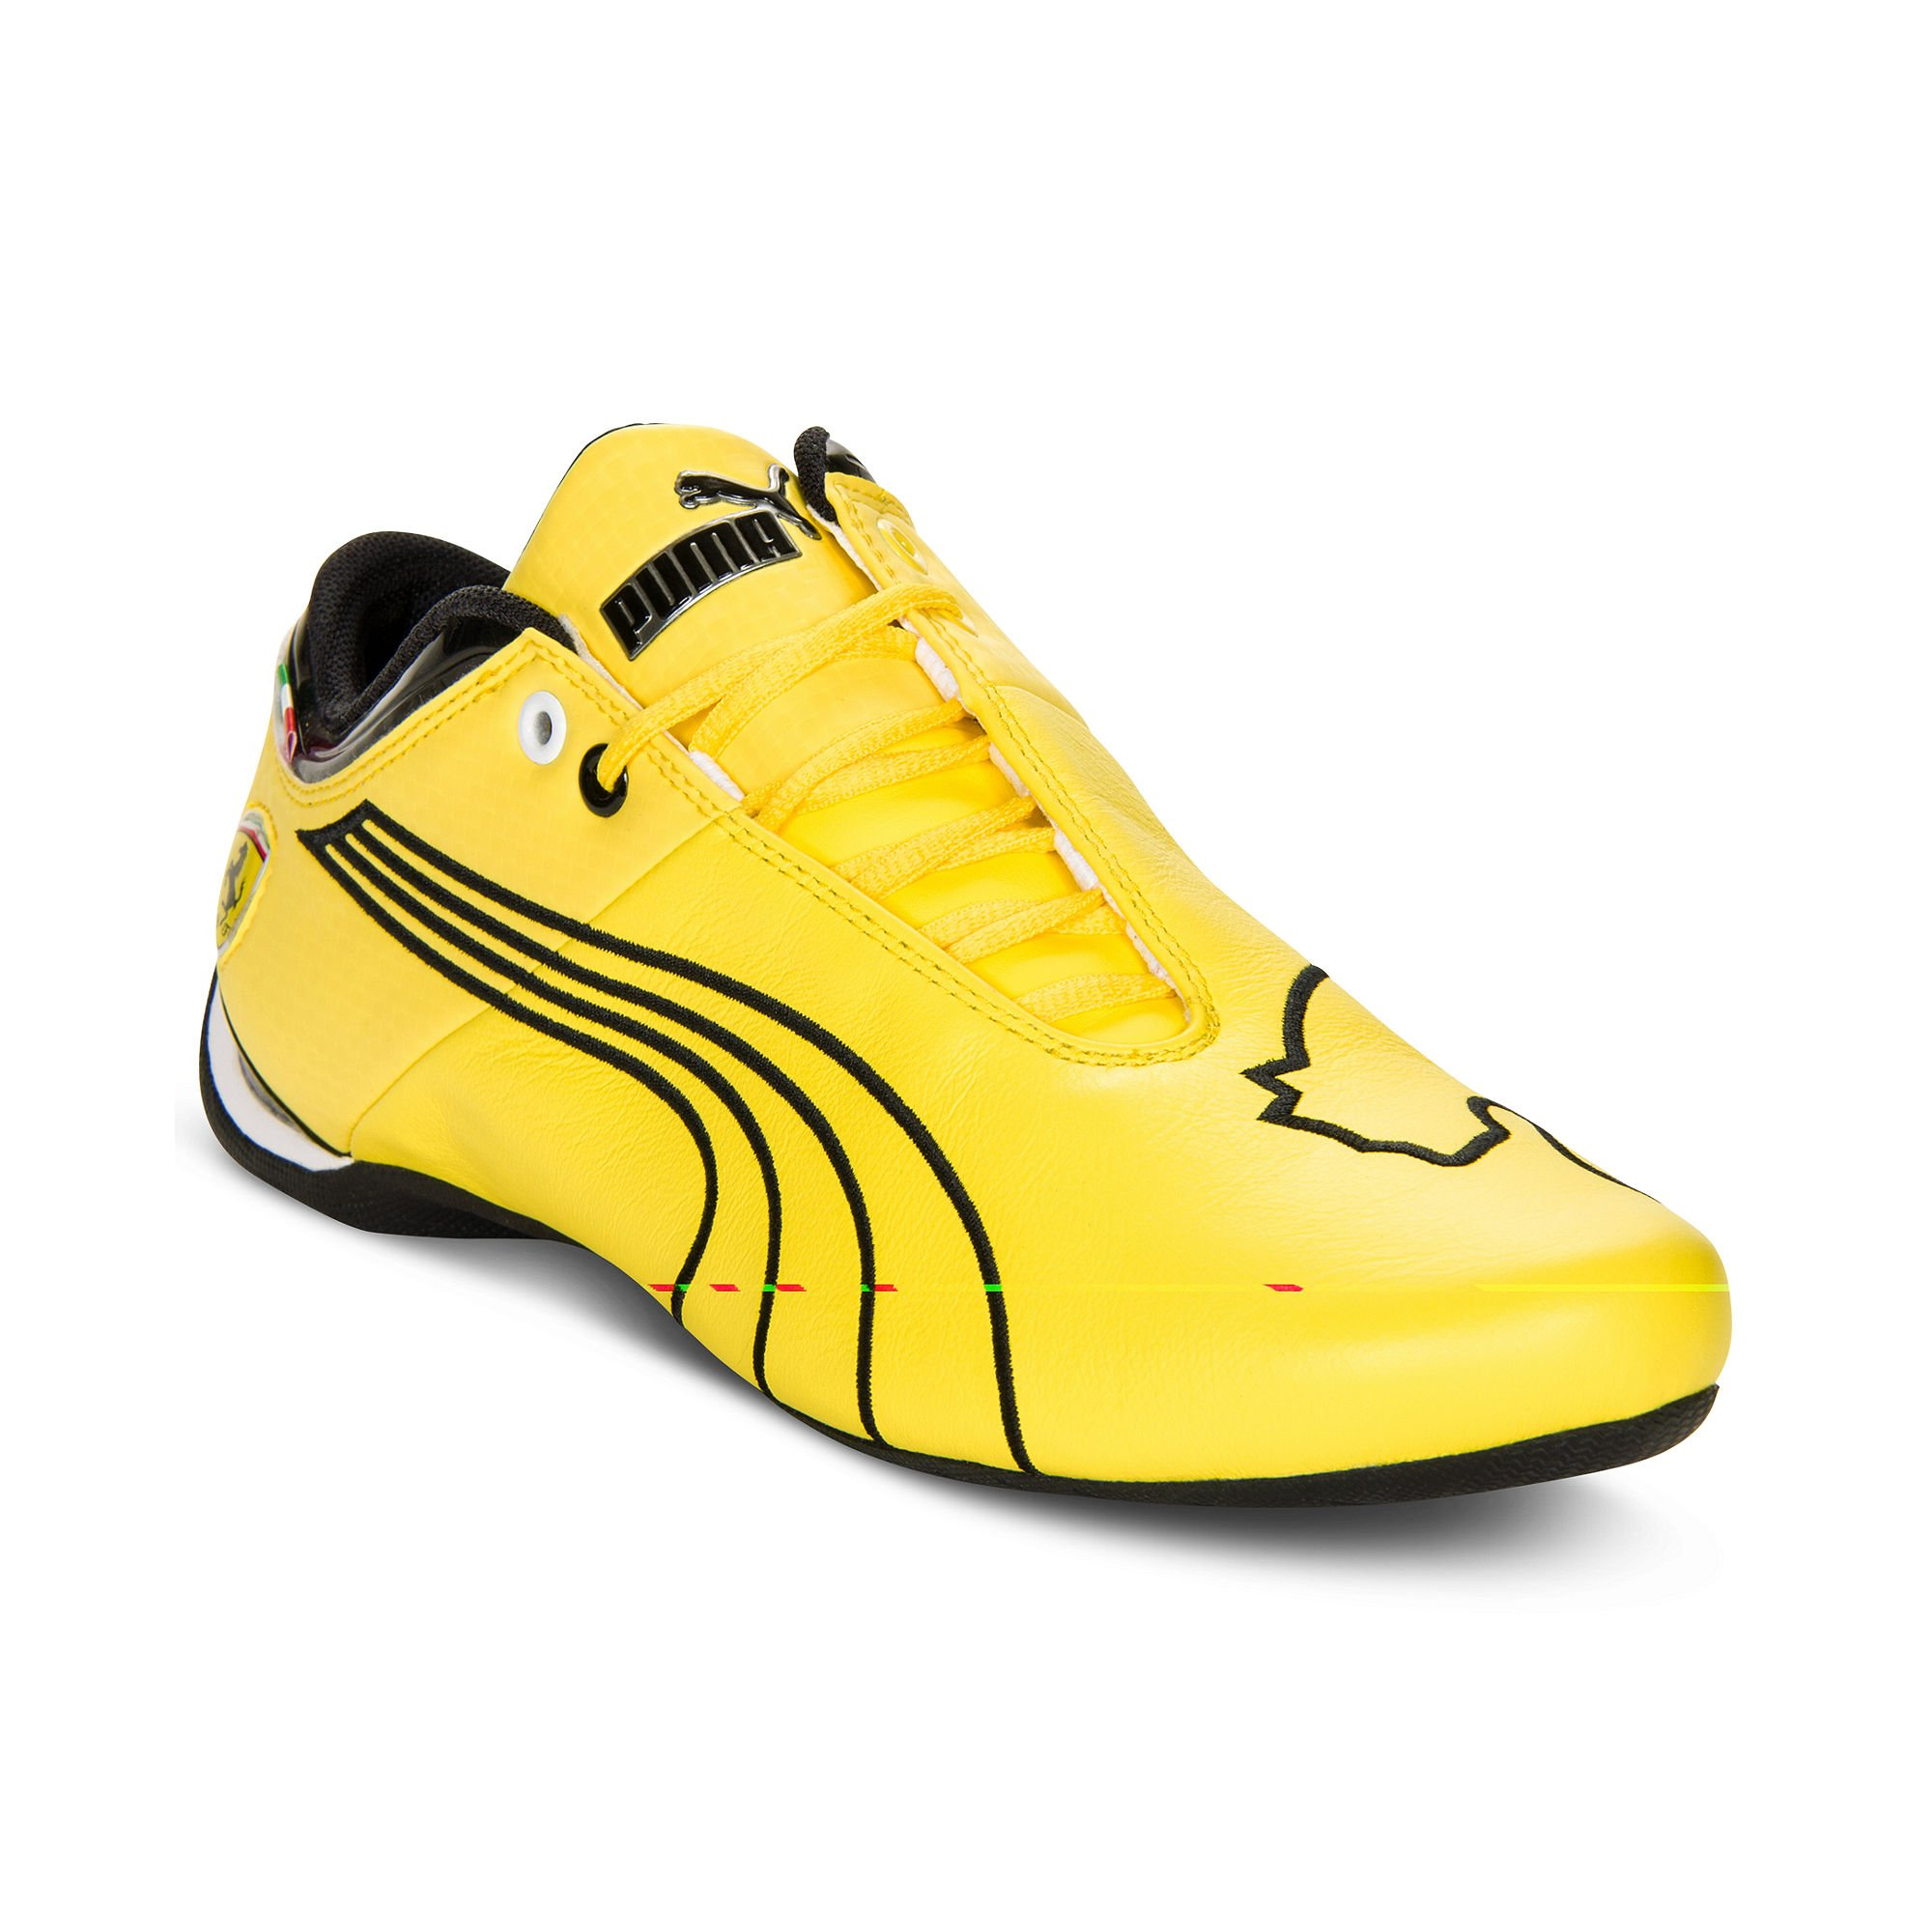 9591bea7e64 ... gt ferrari whitepuma flatspuma racing shoesoutlet 38b5e b3283   inexpensive lyst puma future cat m1 big sf nm sneakers in yellow for men  f05a2 640fd